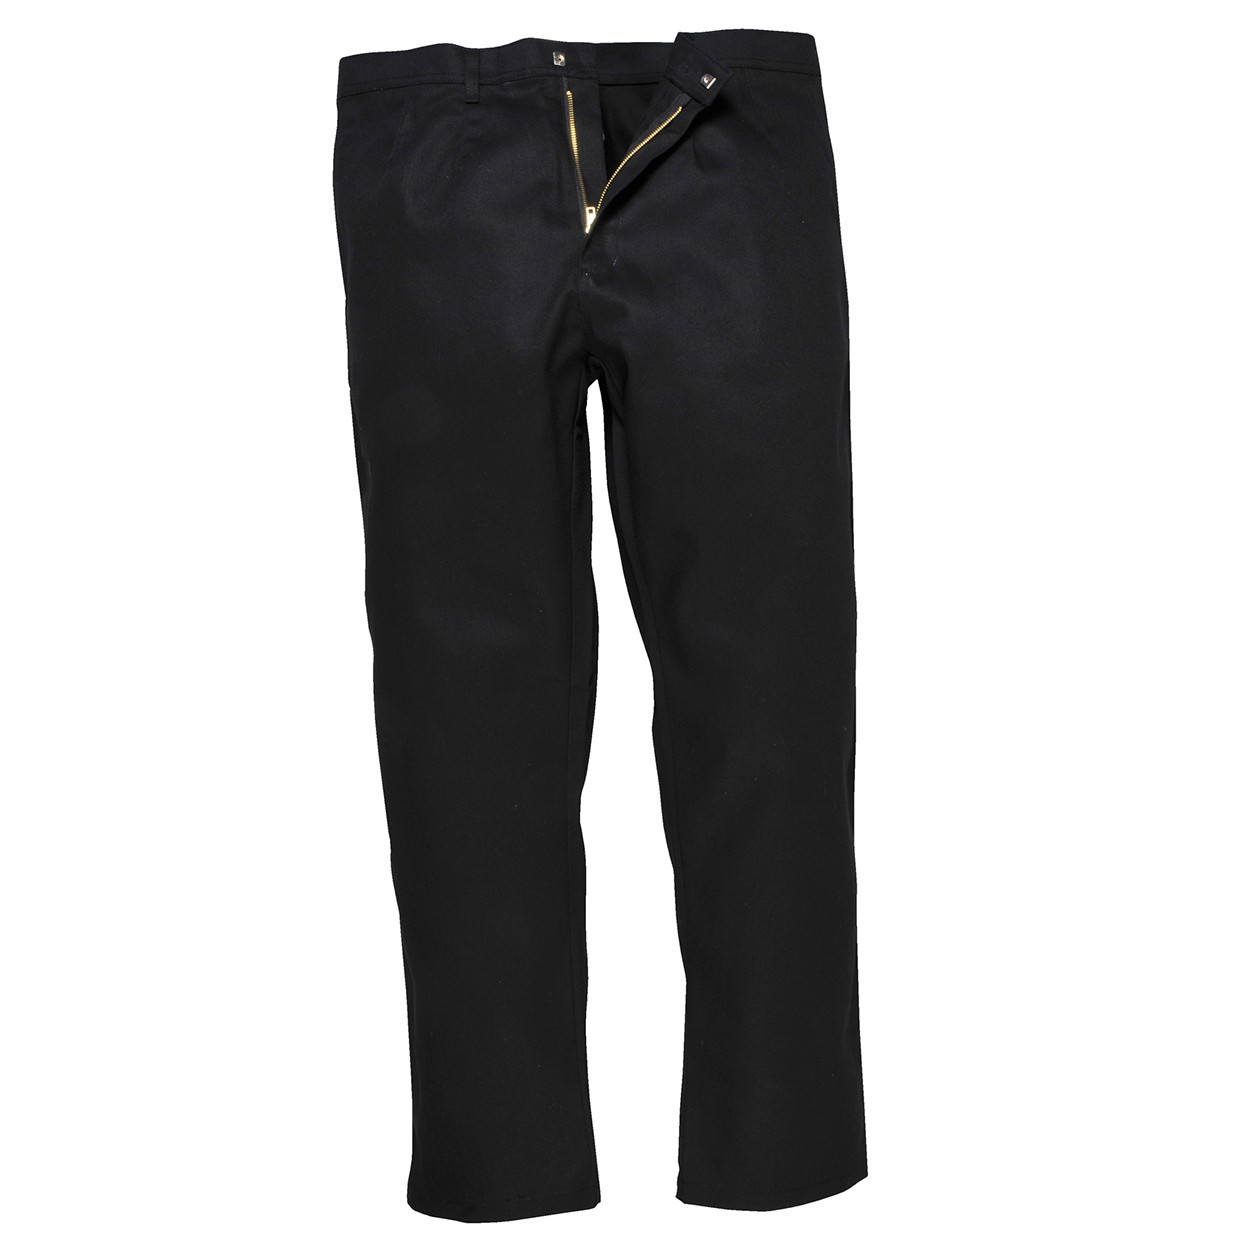 Portwest Bizweld Flame Retardant Resistant Work Trousers Pants Welding BZ30 - Size Large